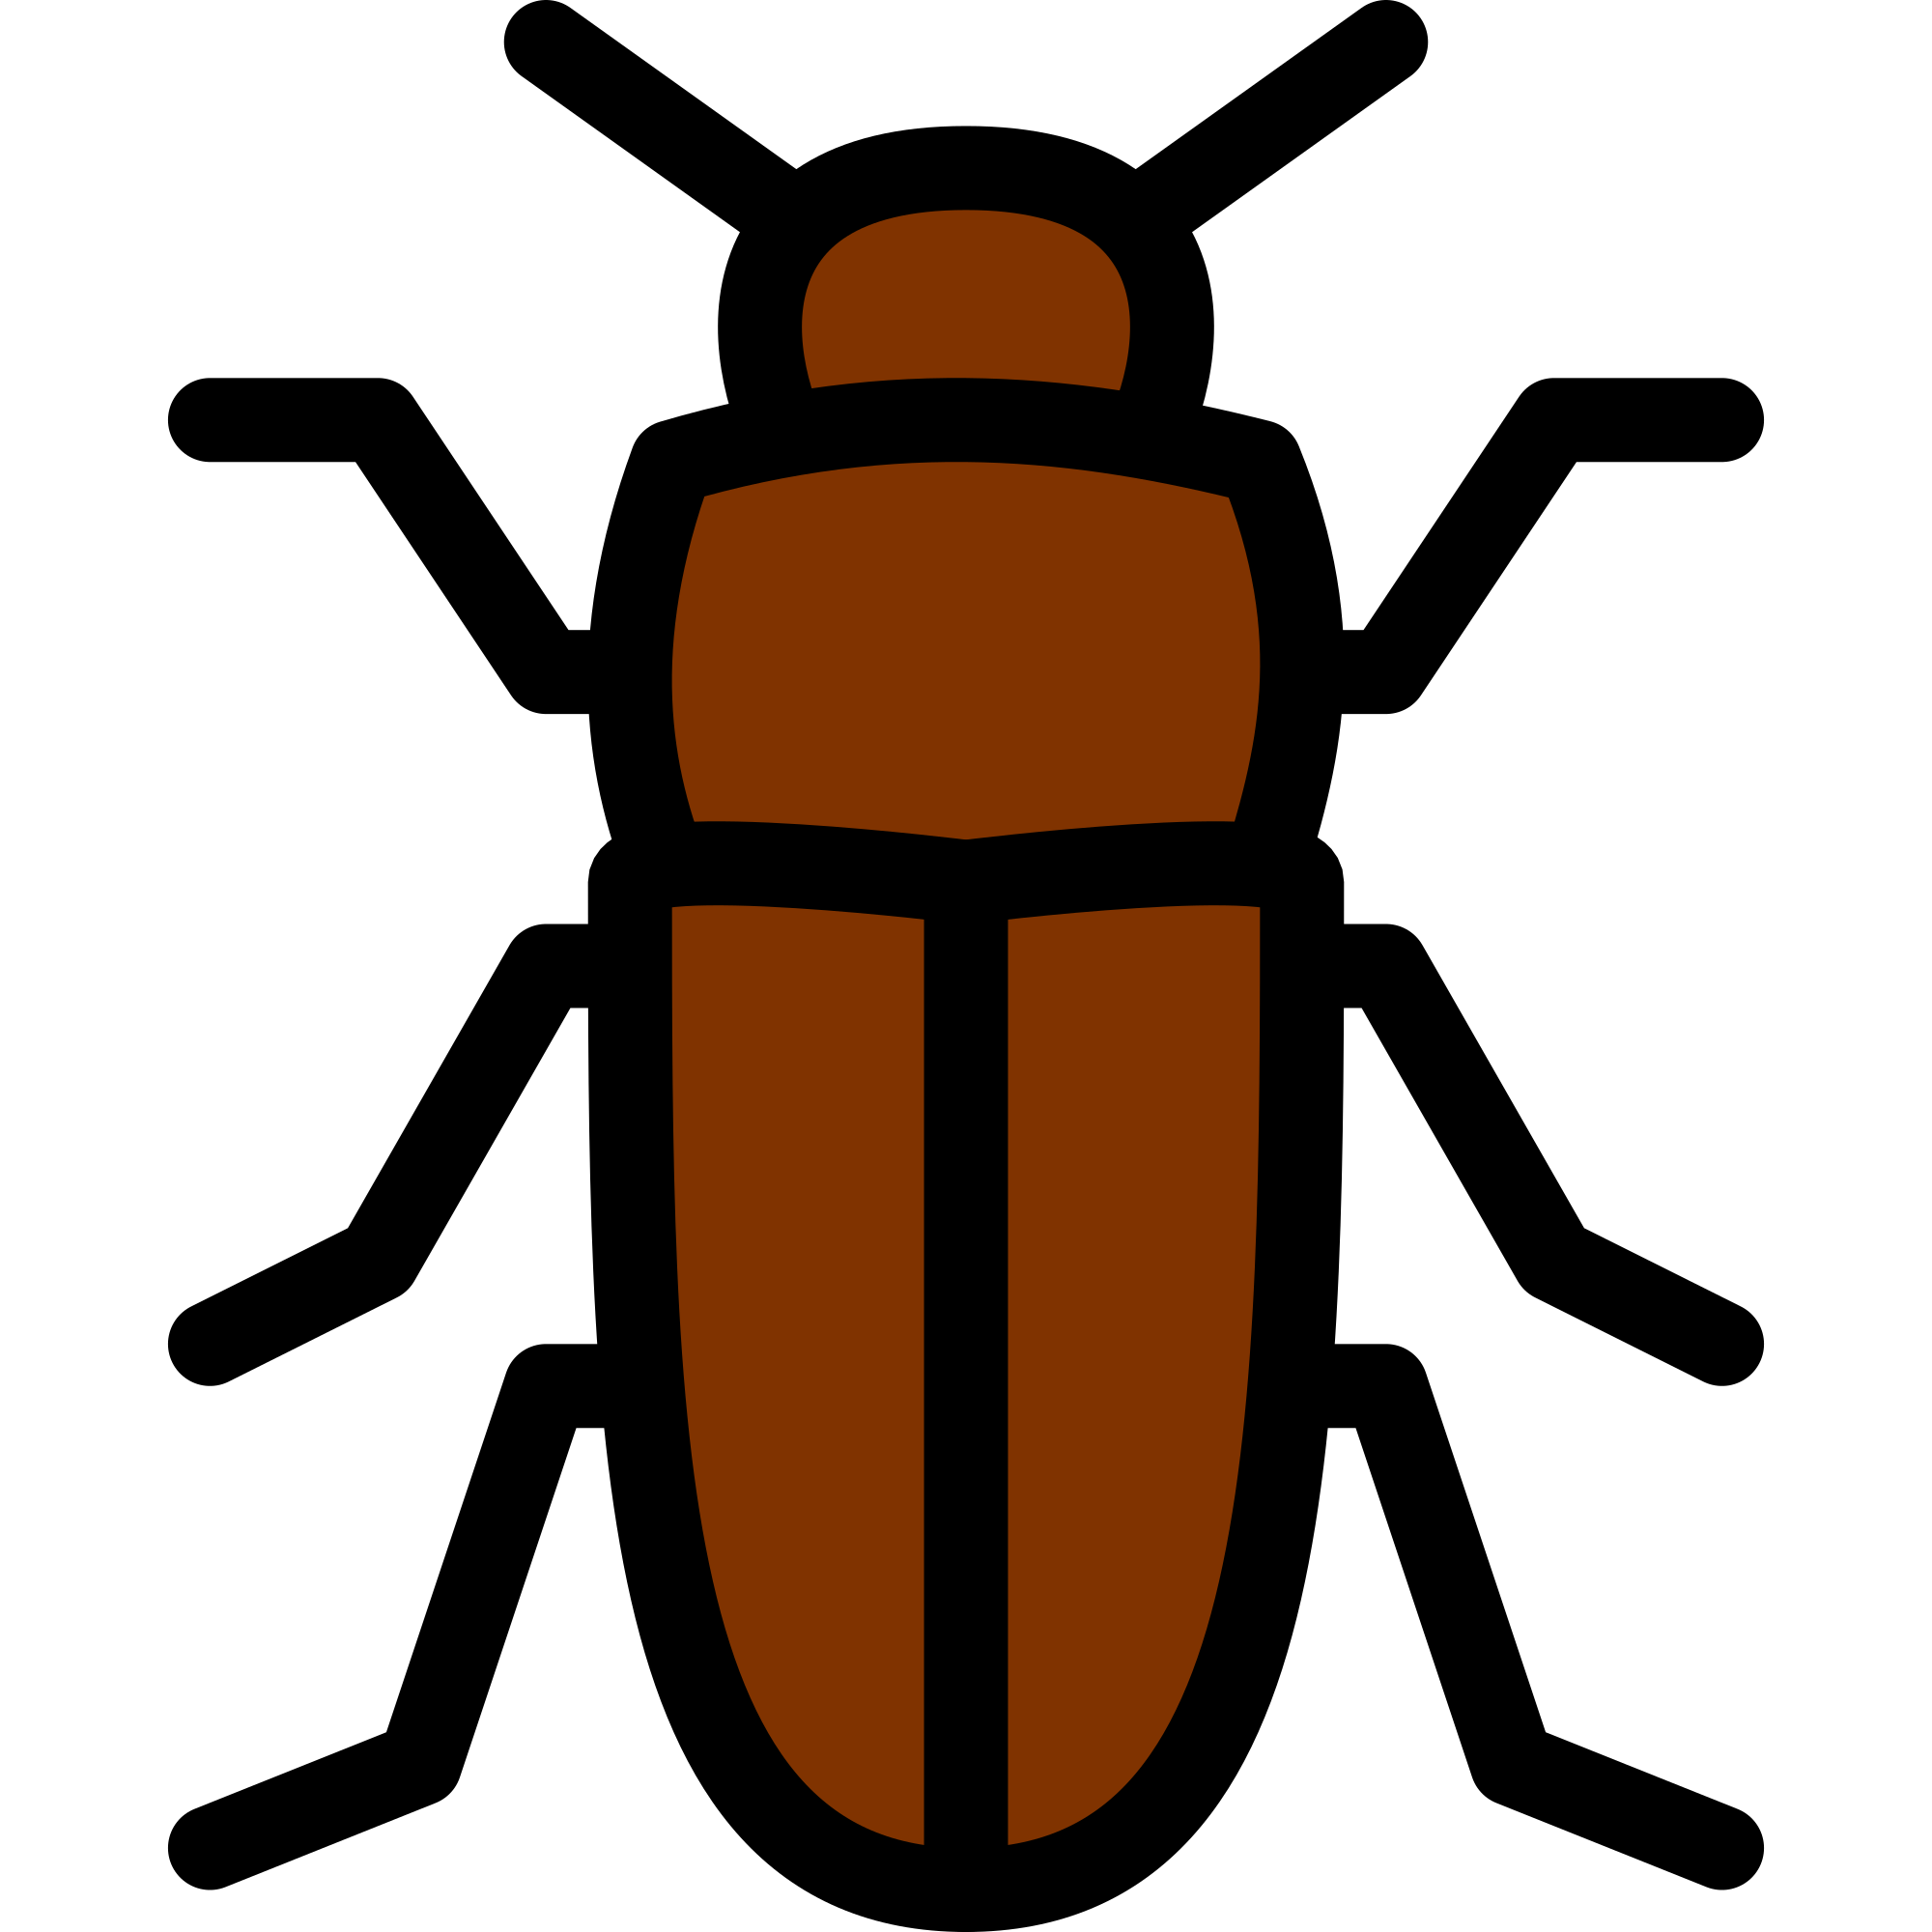 Insects clipart darkling beetle. File icon tribolium castaneum